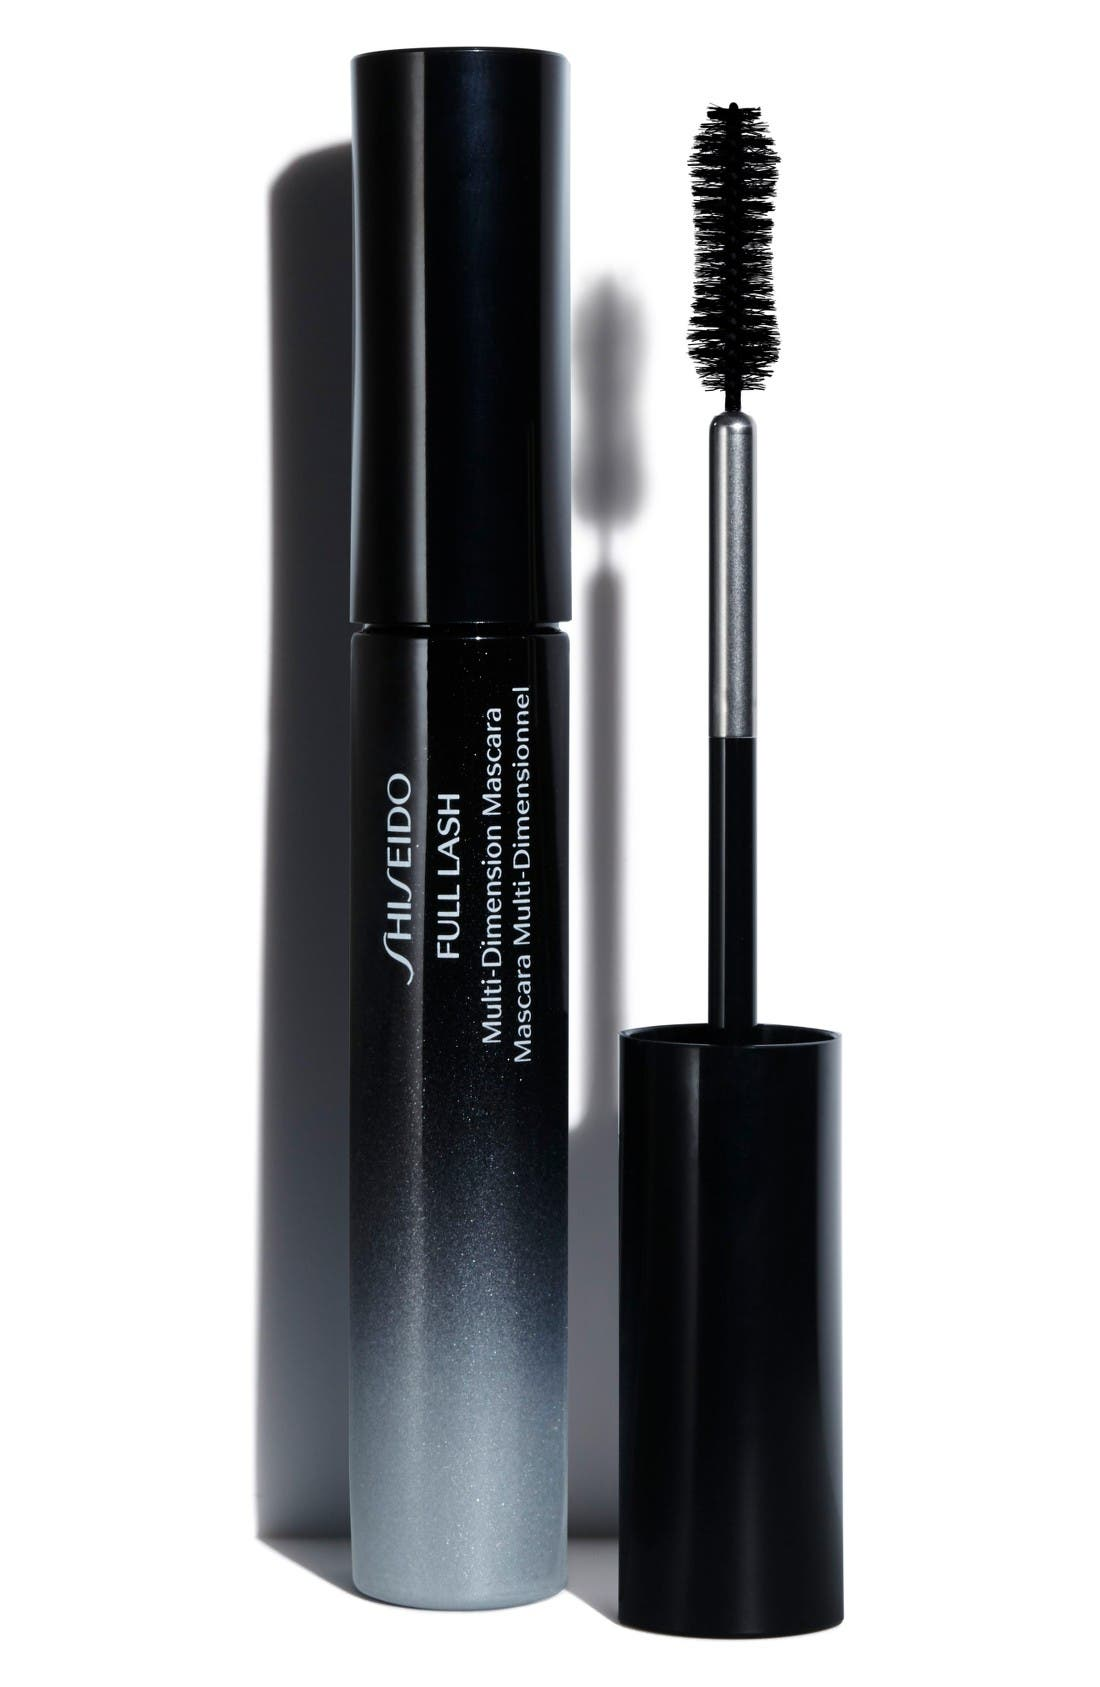 Shiseido Full Lash Dimension Mascara